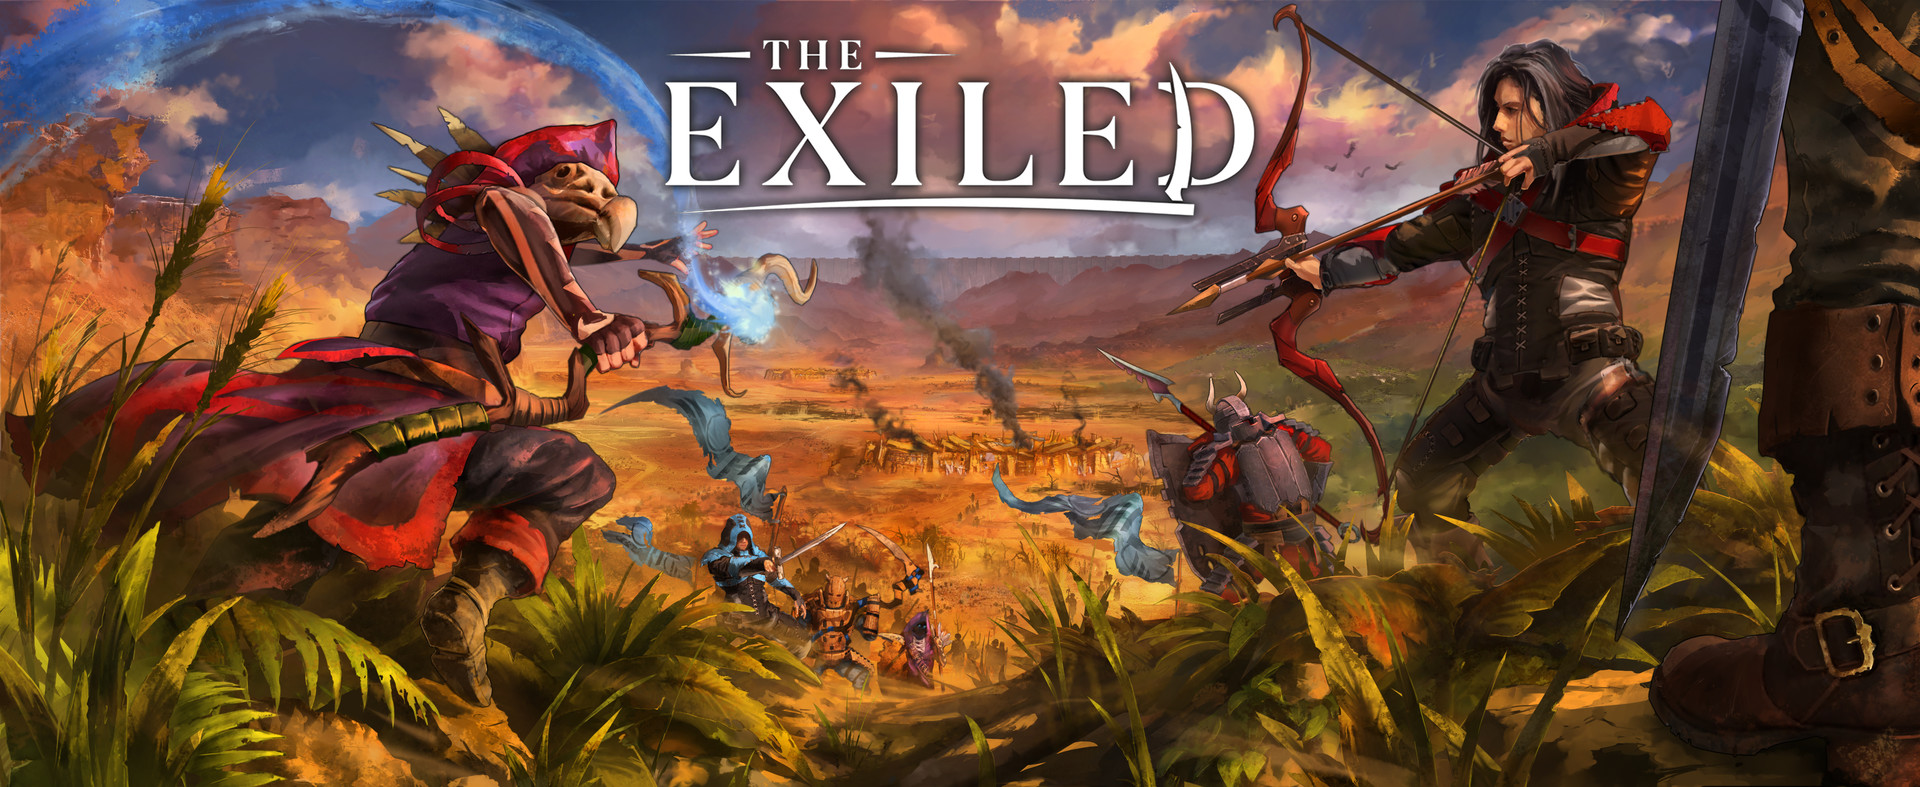 The Exiled: Latest Marketing Image